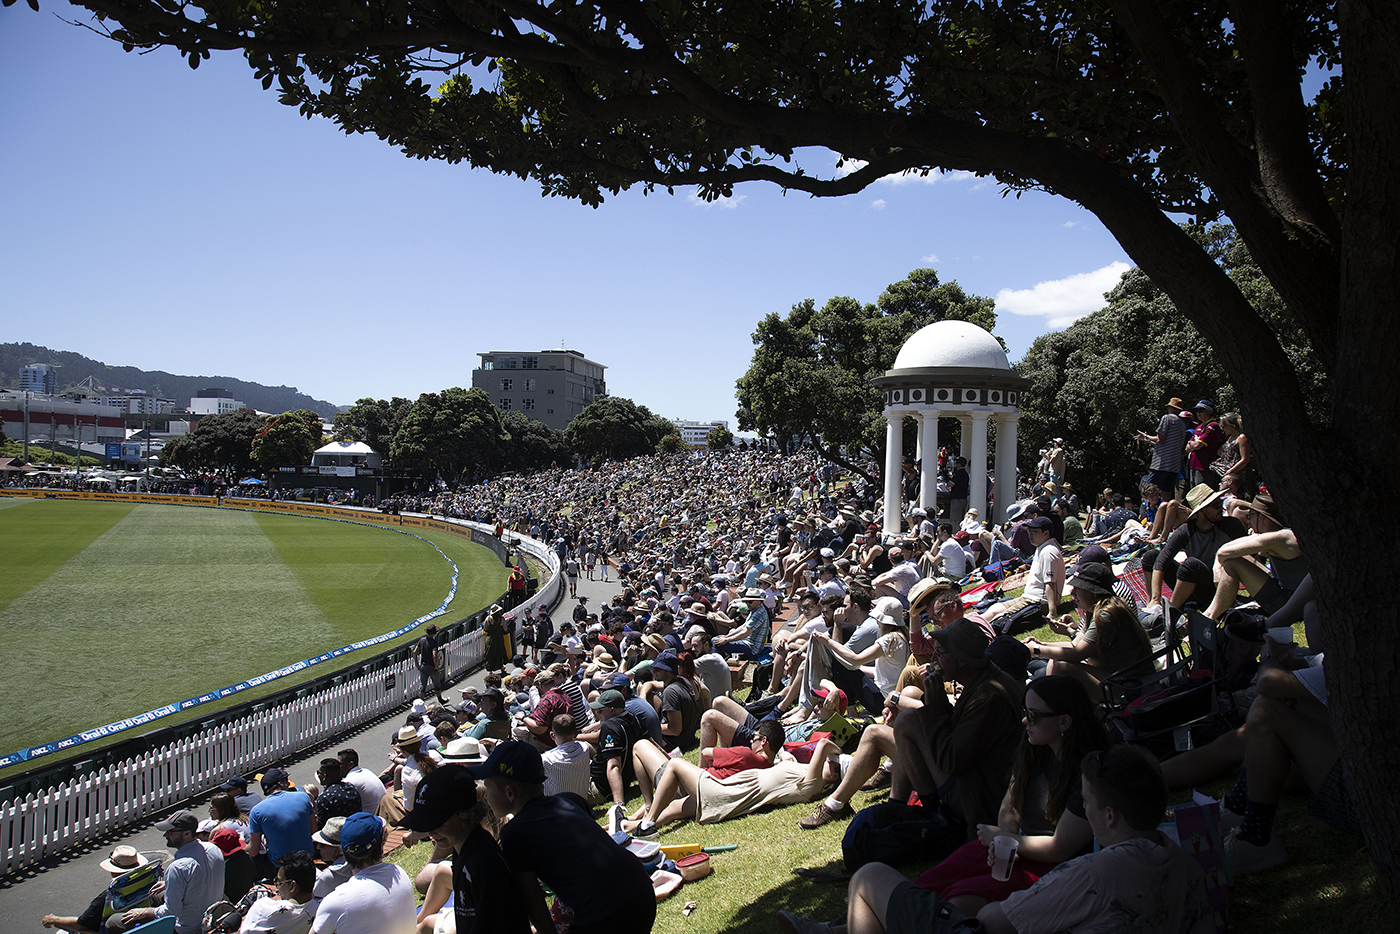 Fans enjoy cricket and the sun at the Basin Reserve, Wellington